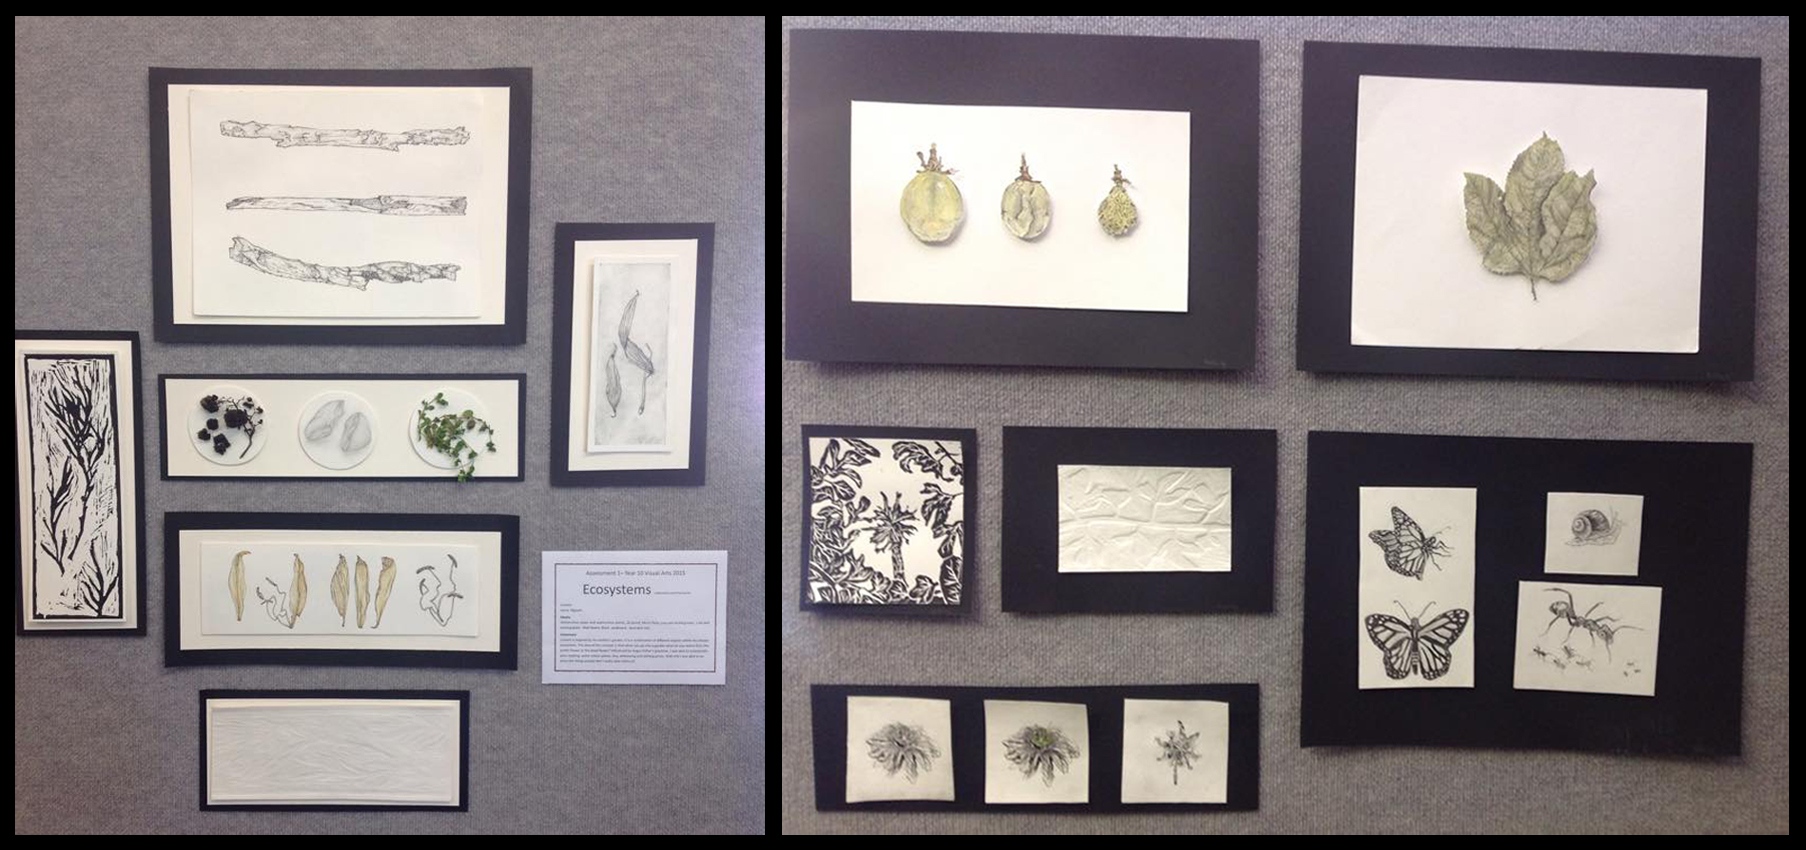 Just some of the great year 10 work displayed in the exhibition